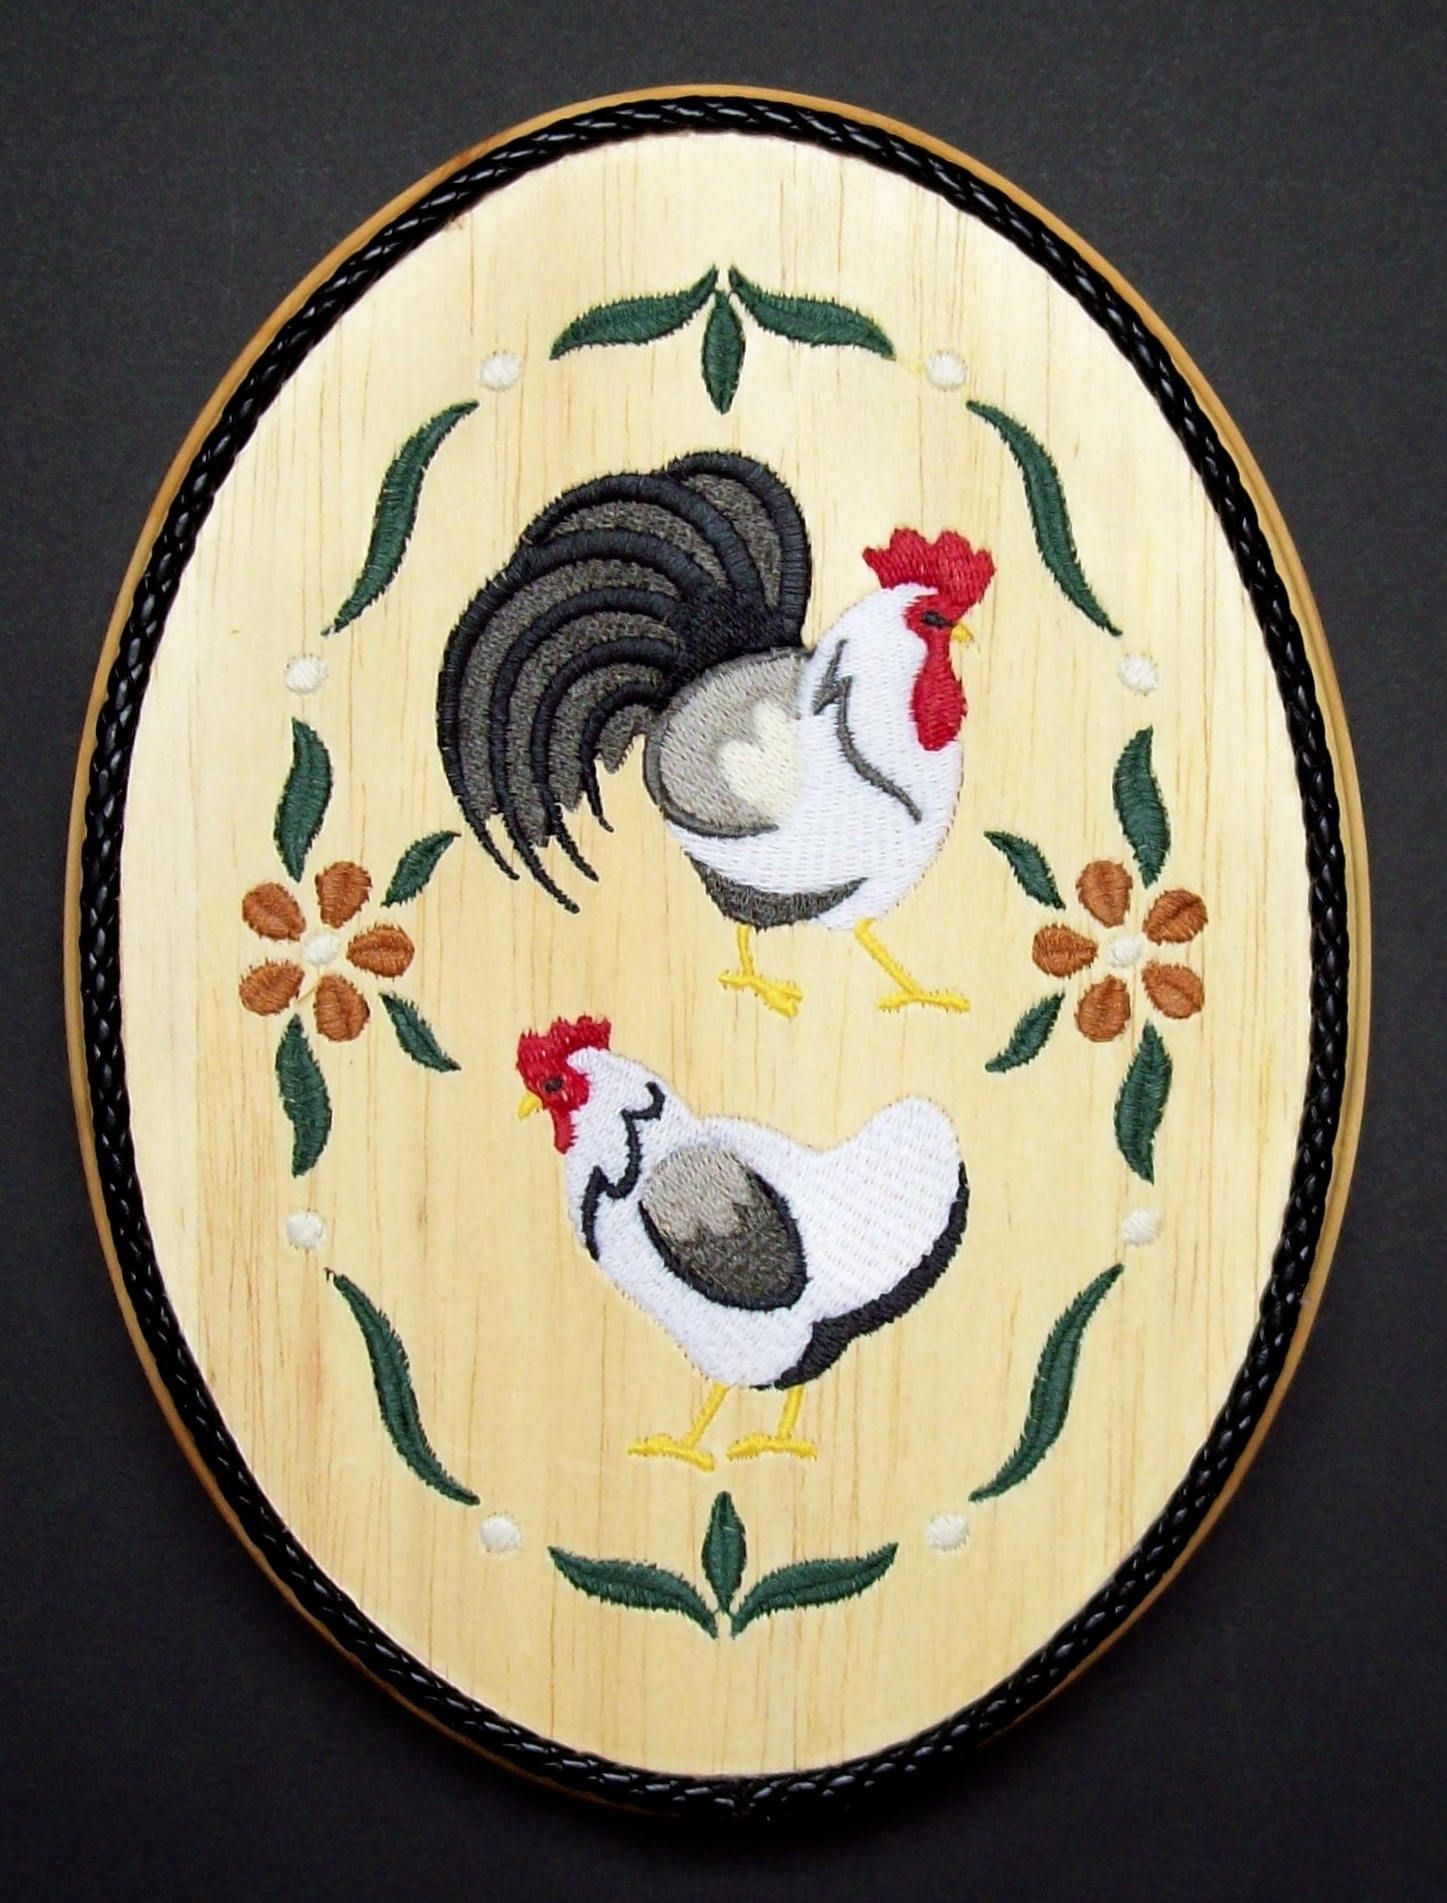 French Country Chickens Embroidery Wood Art, Chicken Wall Decor ...